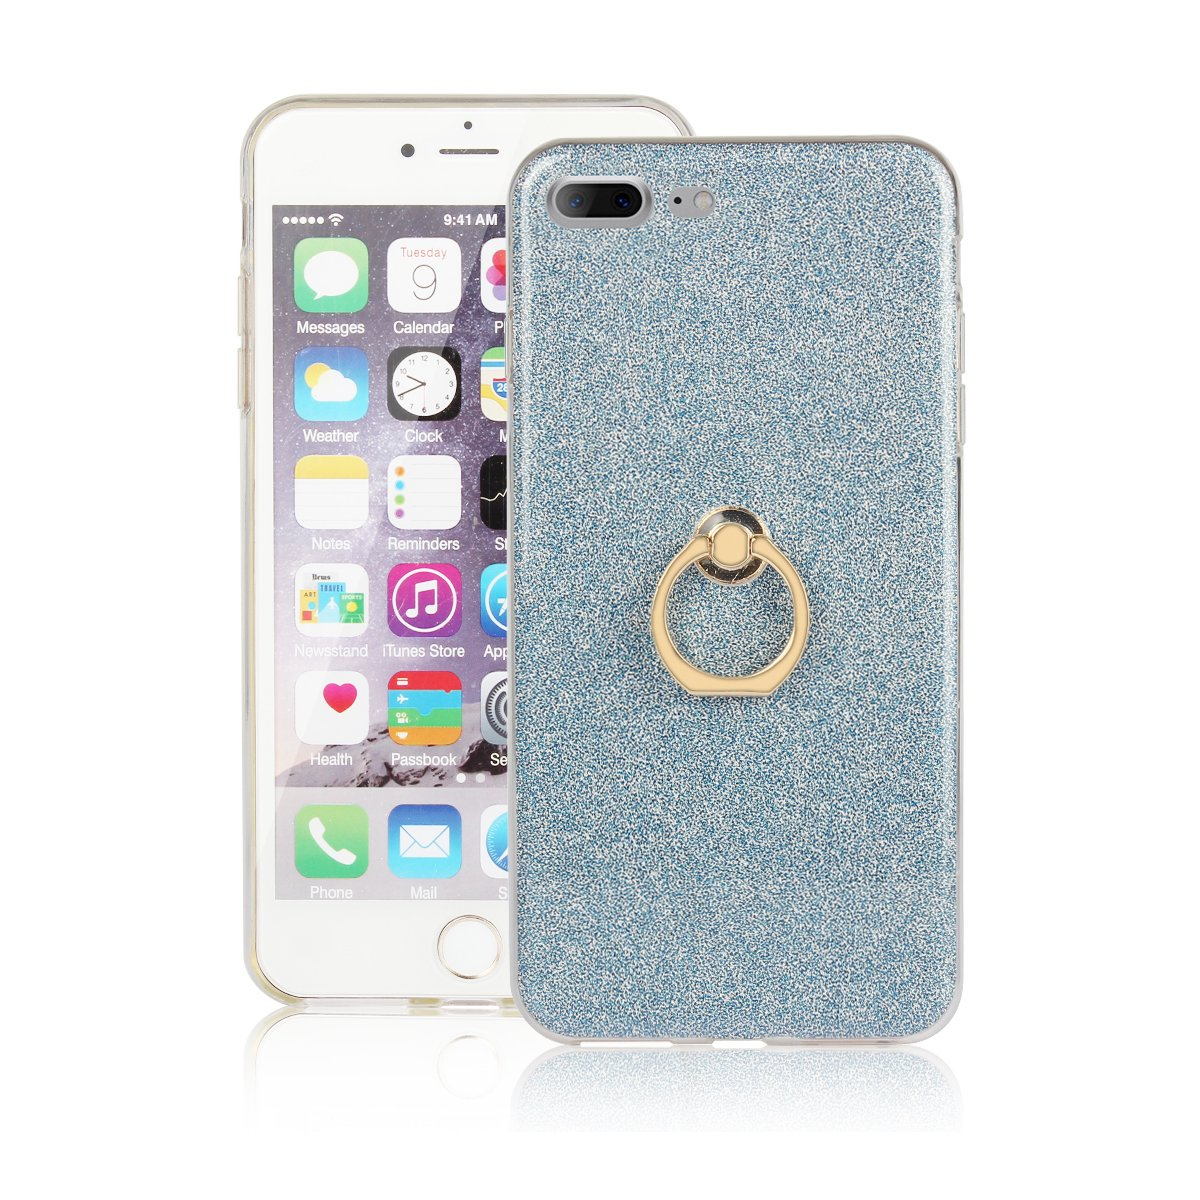 For iPhone 7 Plus/iPhone 8 Plus Case, Gostyle Bling Glitter Clear Ultra Slim Cover, Soft TPU Silicone with Ring Holder Anti-Scratch Shockproof Protective Cover for iPhone 7 Plus/8 Plus 5.5 inch, Golden